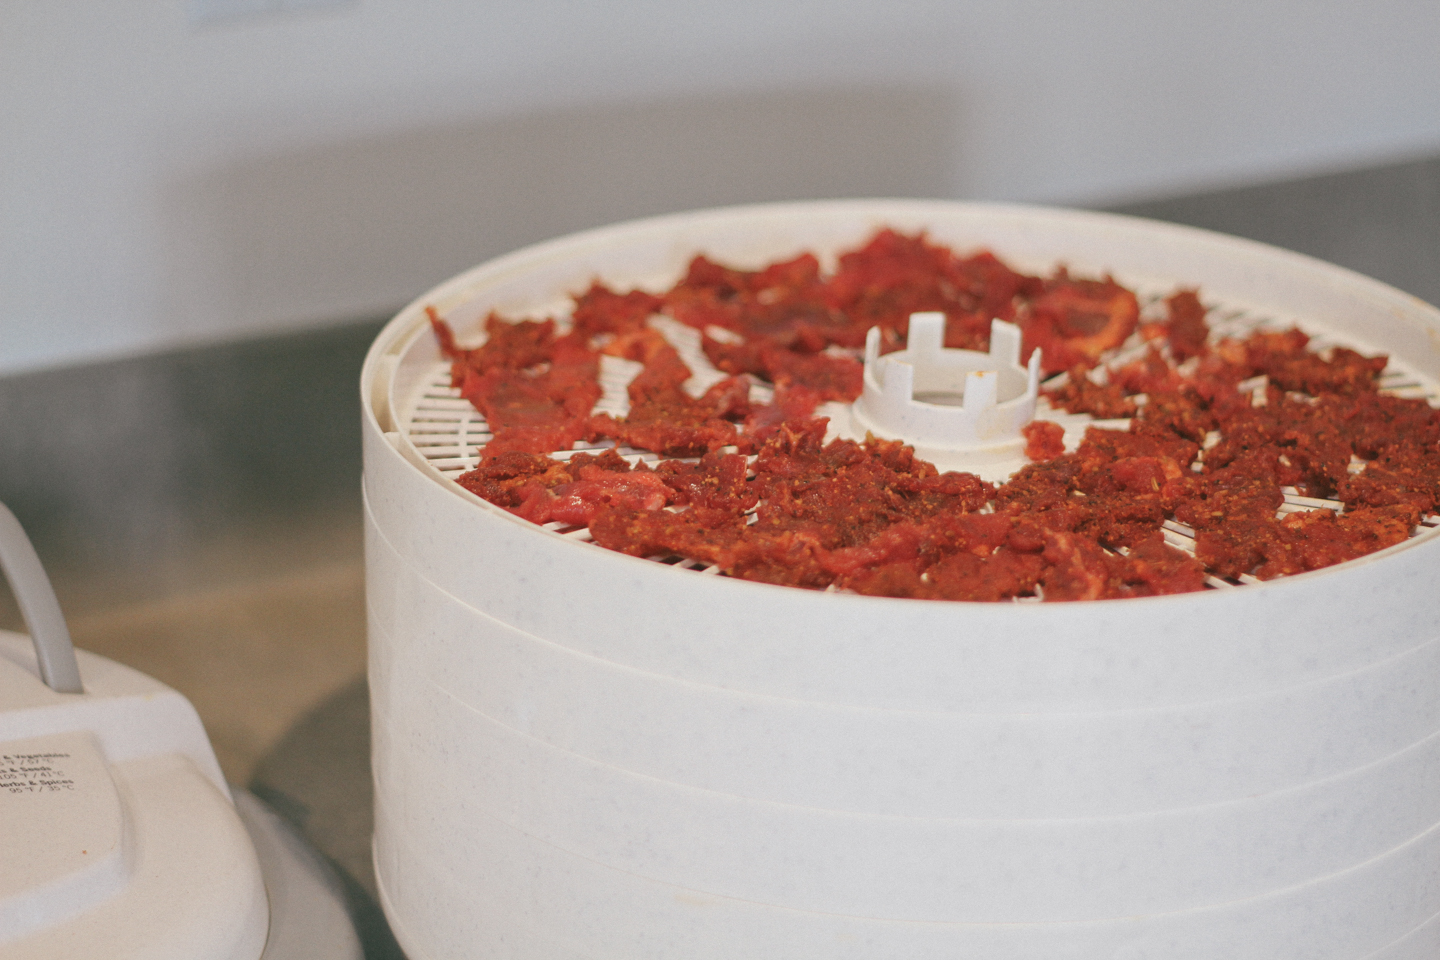 Load up the dehydrator